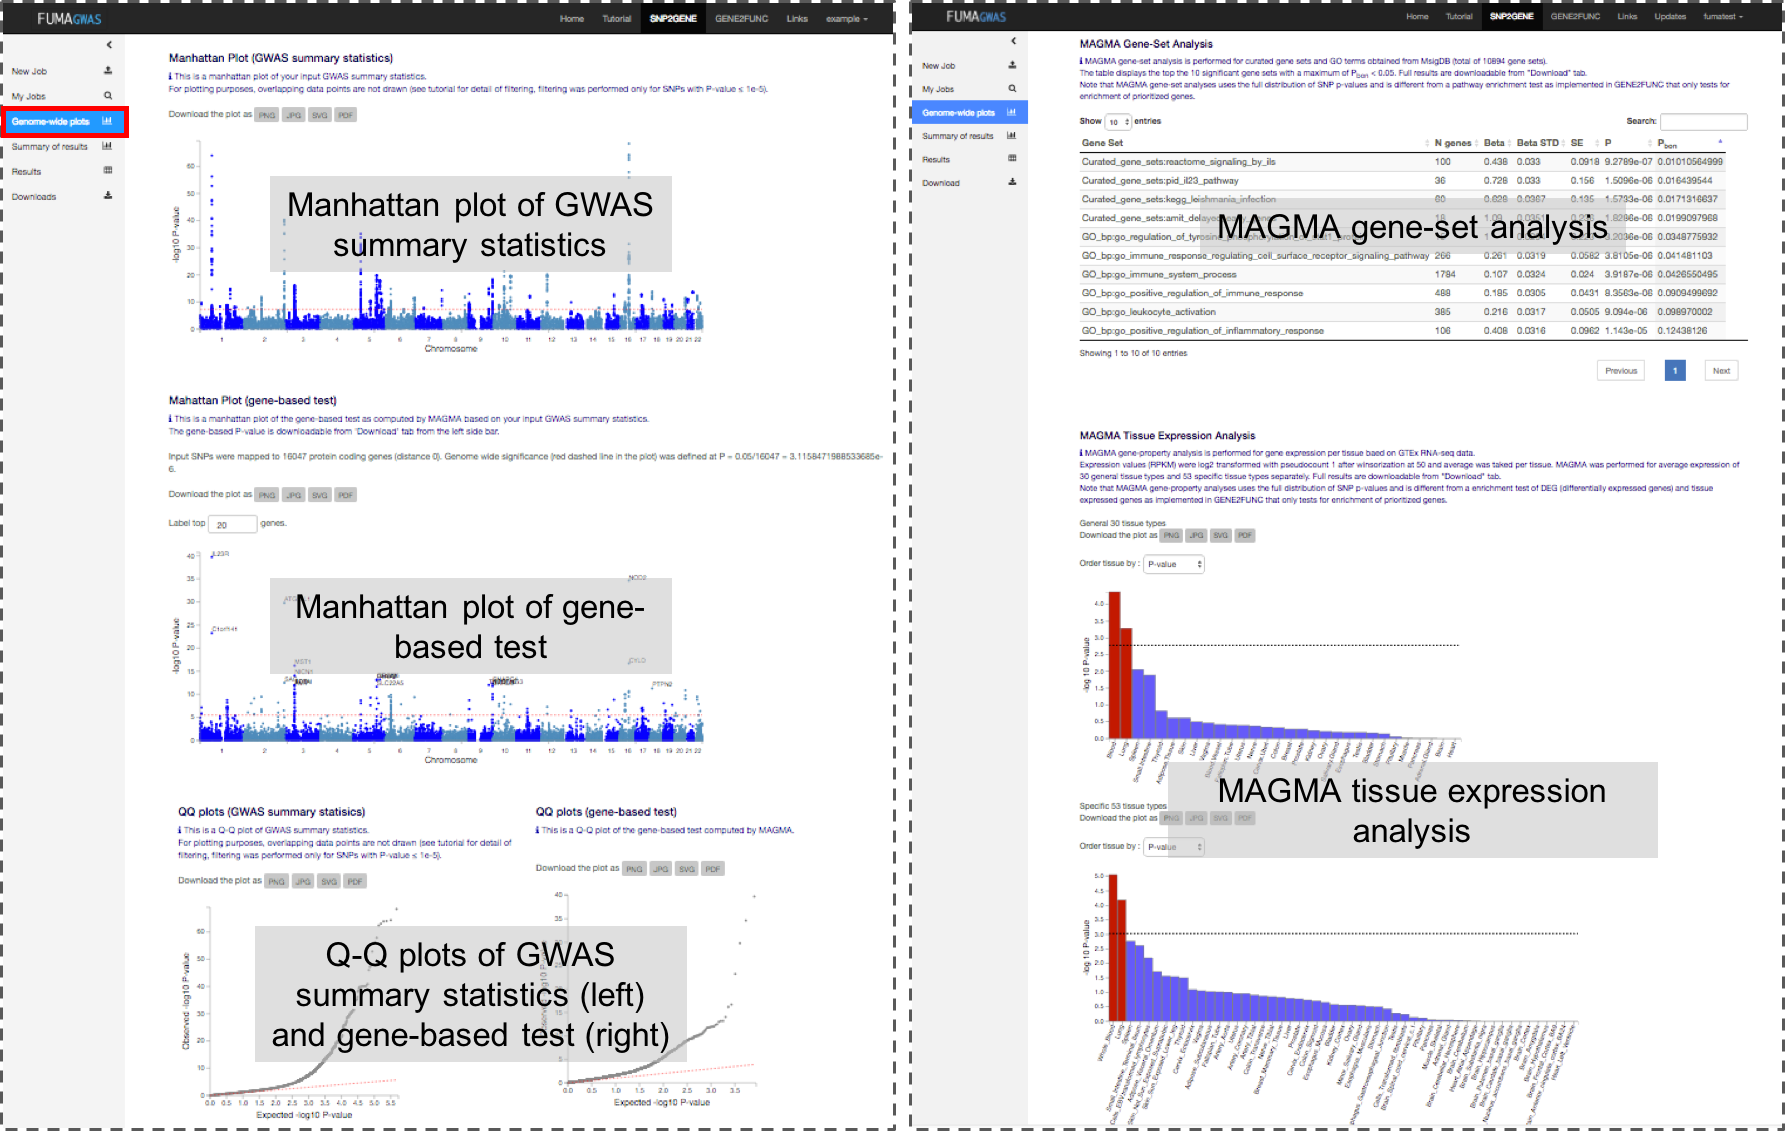 Functional Mapping and Annotation of Genome-wide association studies